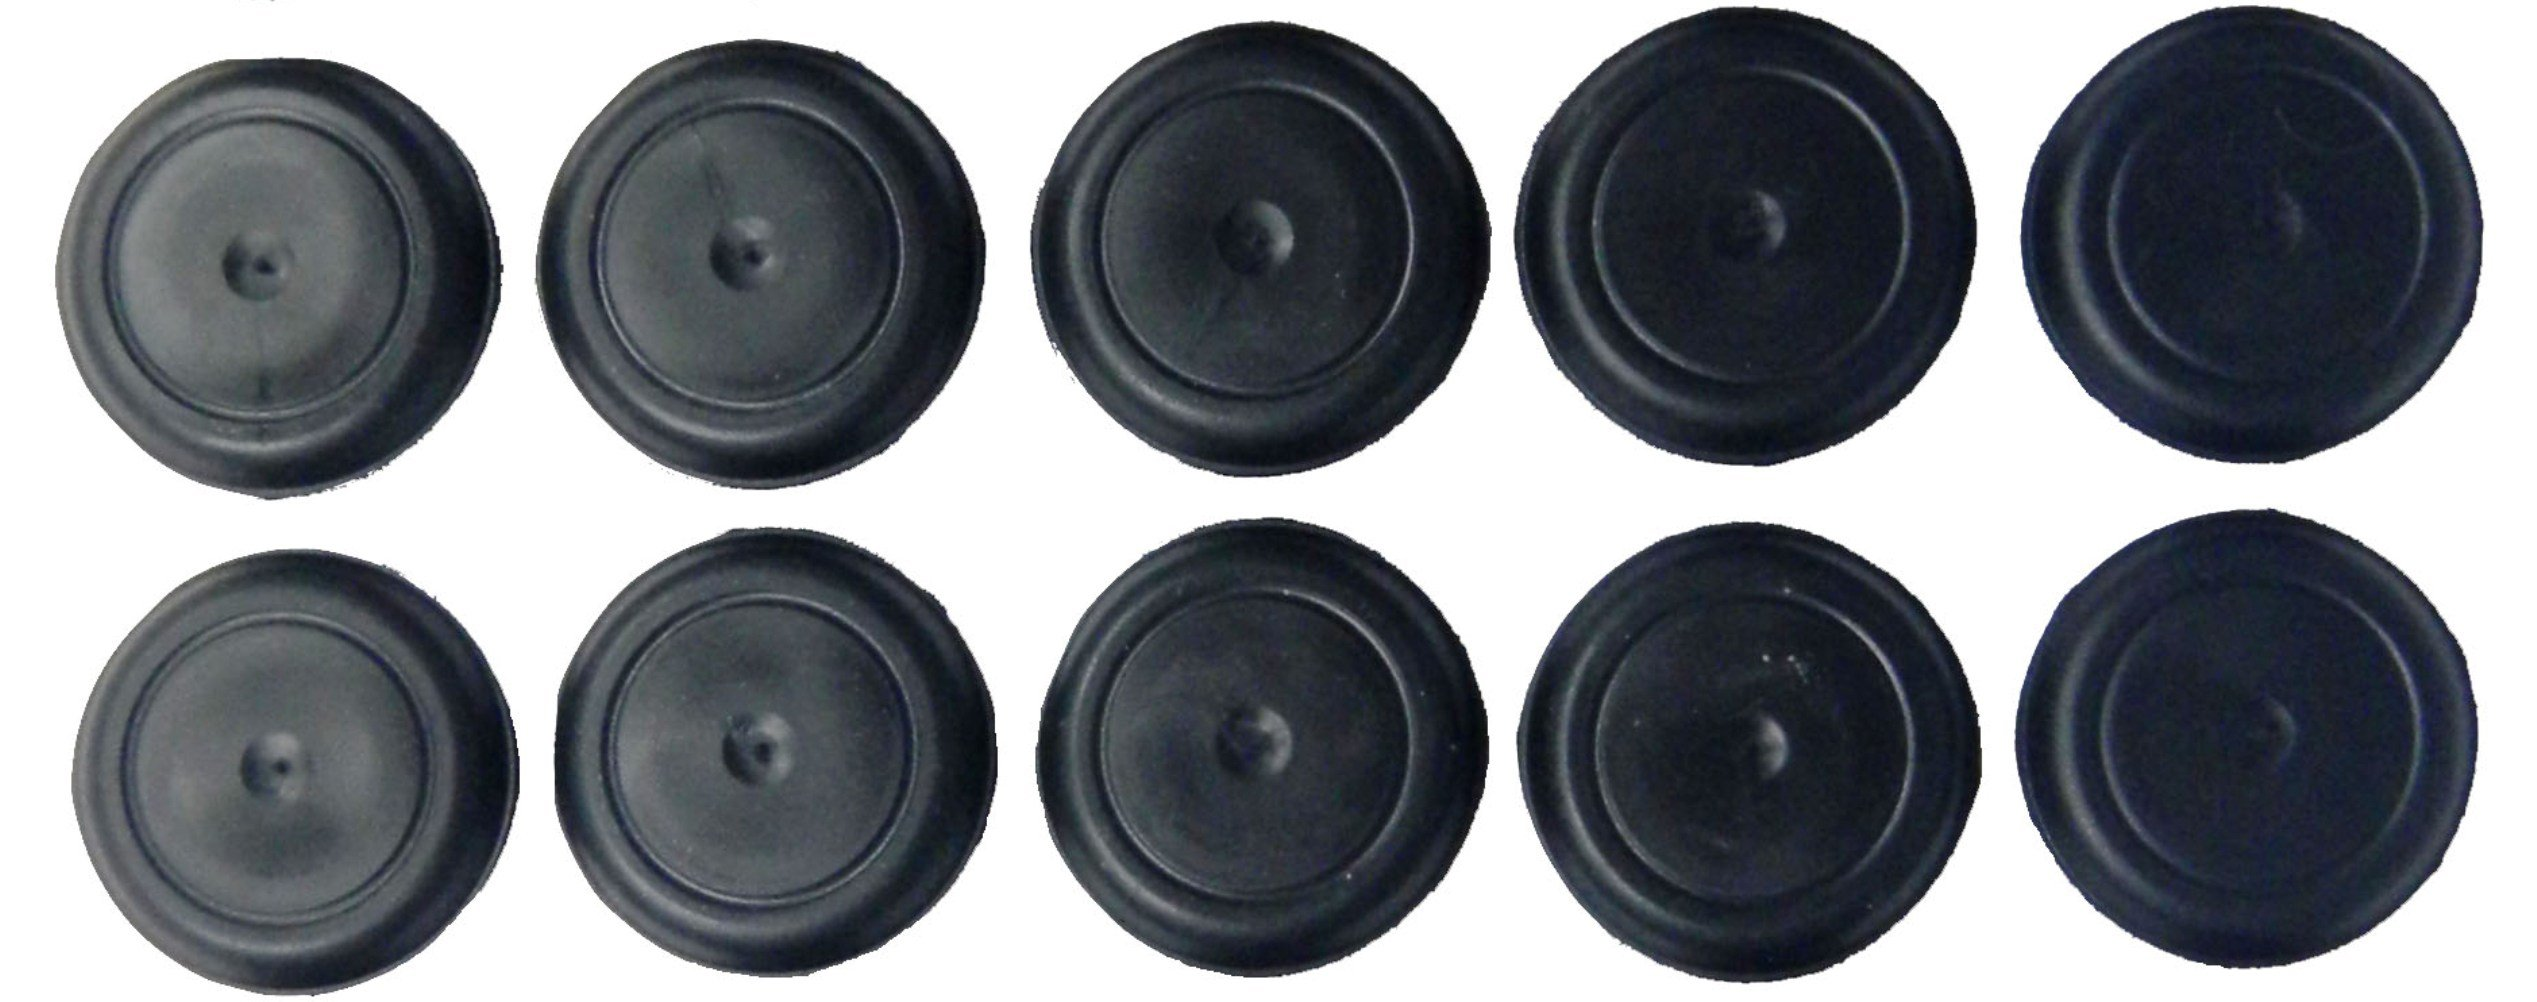 1 1/2'' 1.5 inch Black Rubber Plugs for Flush Mount Body and Sheet Metal Holes Qty 10